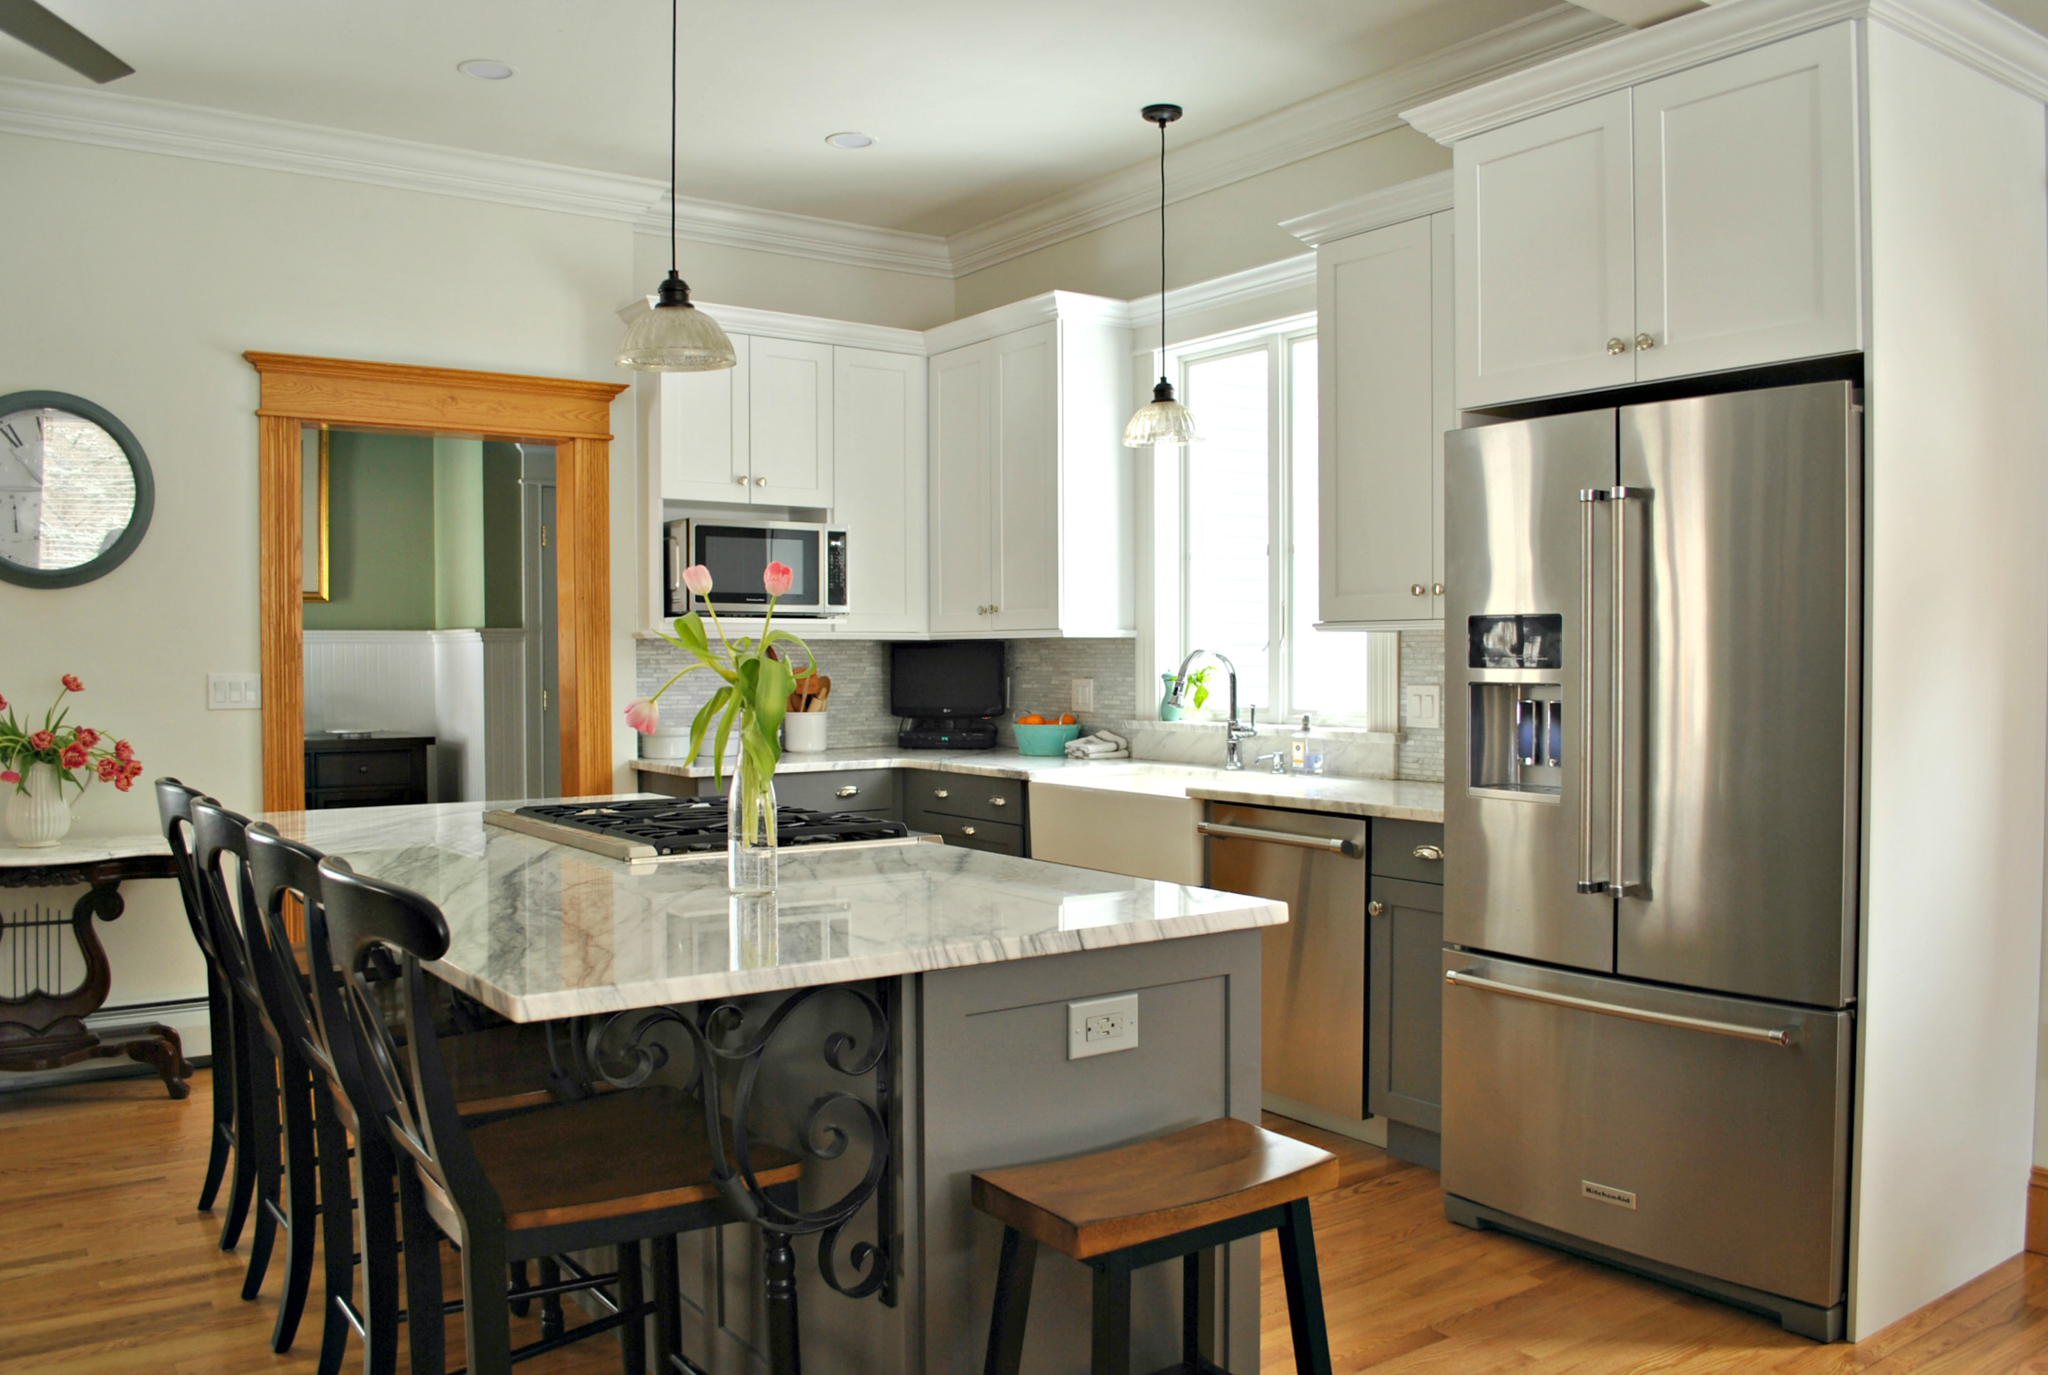 A Kitchen Remodel That Brings The Family Together